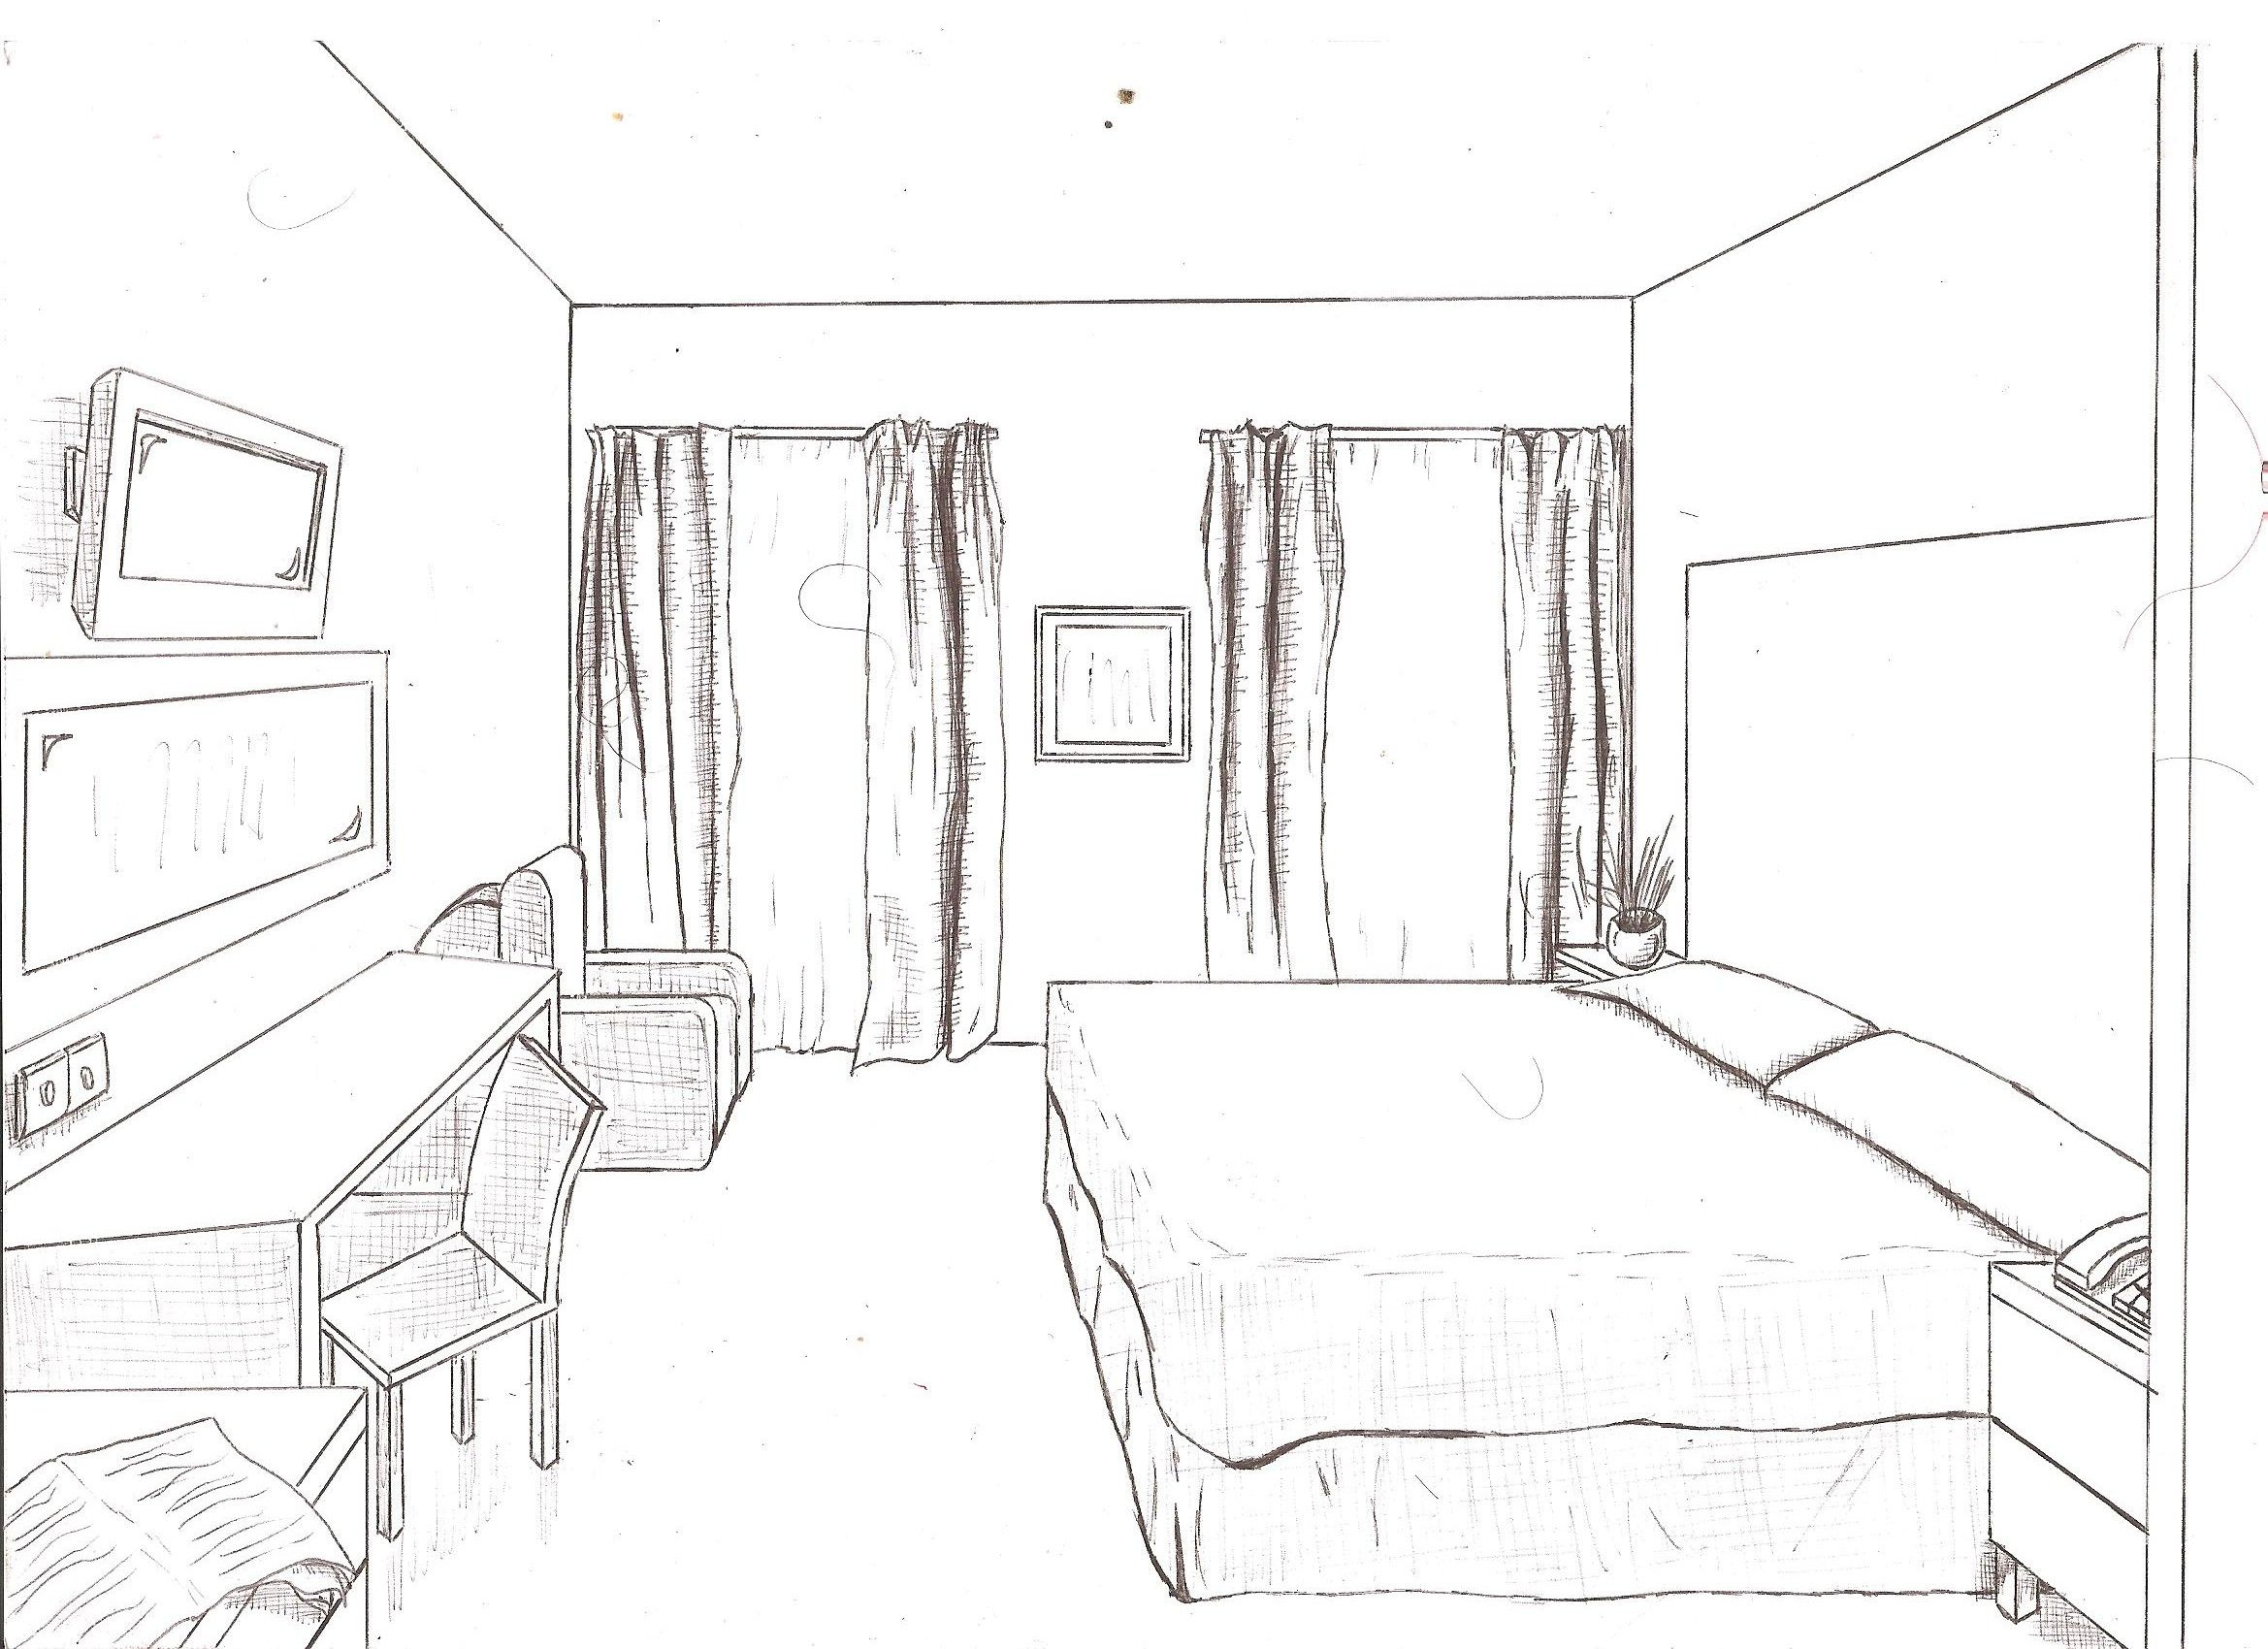 Room Design Drawing how to draw a bedroom - google search | interior perspective ref